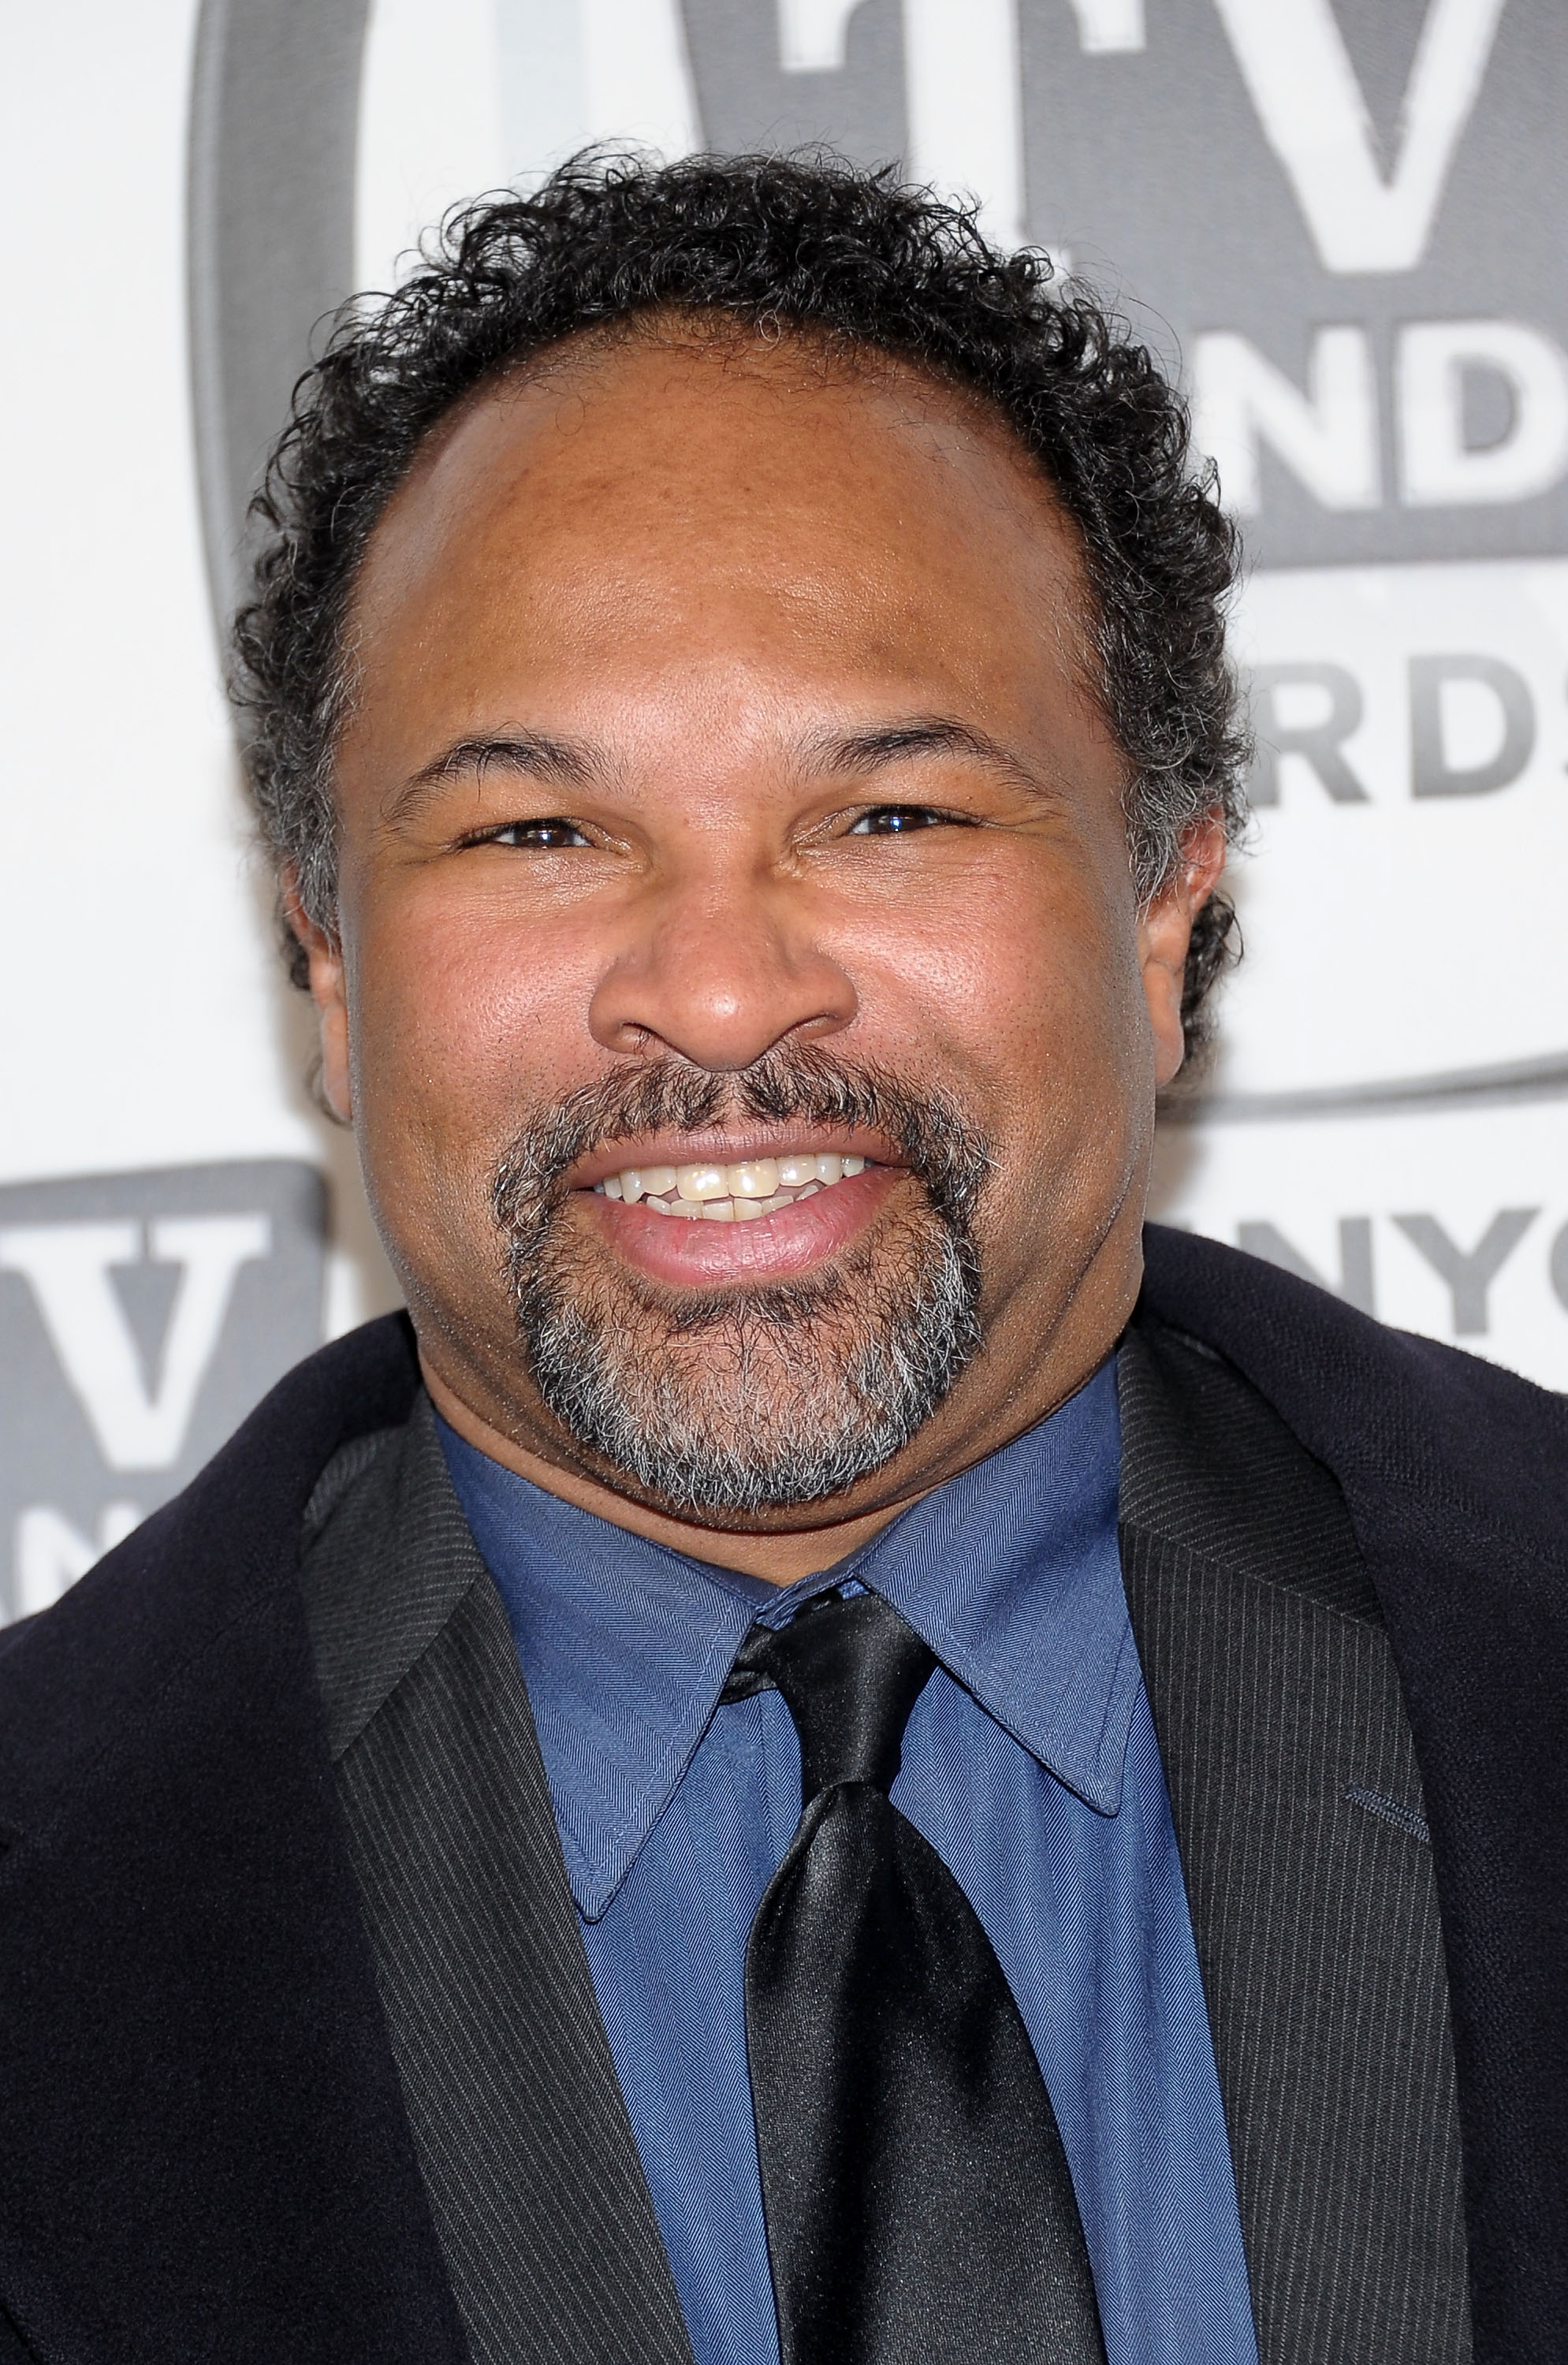 Geoffrey Owens attends the 9th Annual TV Land Awards at the Javits Center on April 10, 2011 in New York City